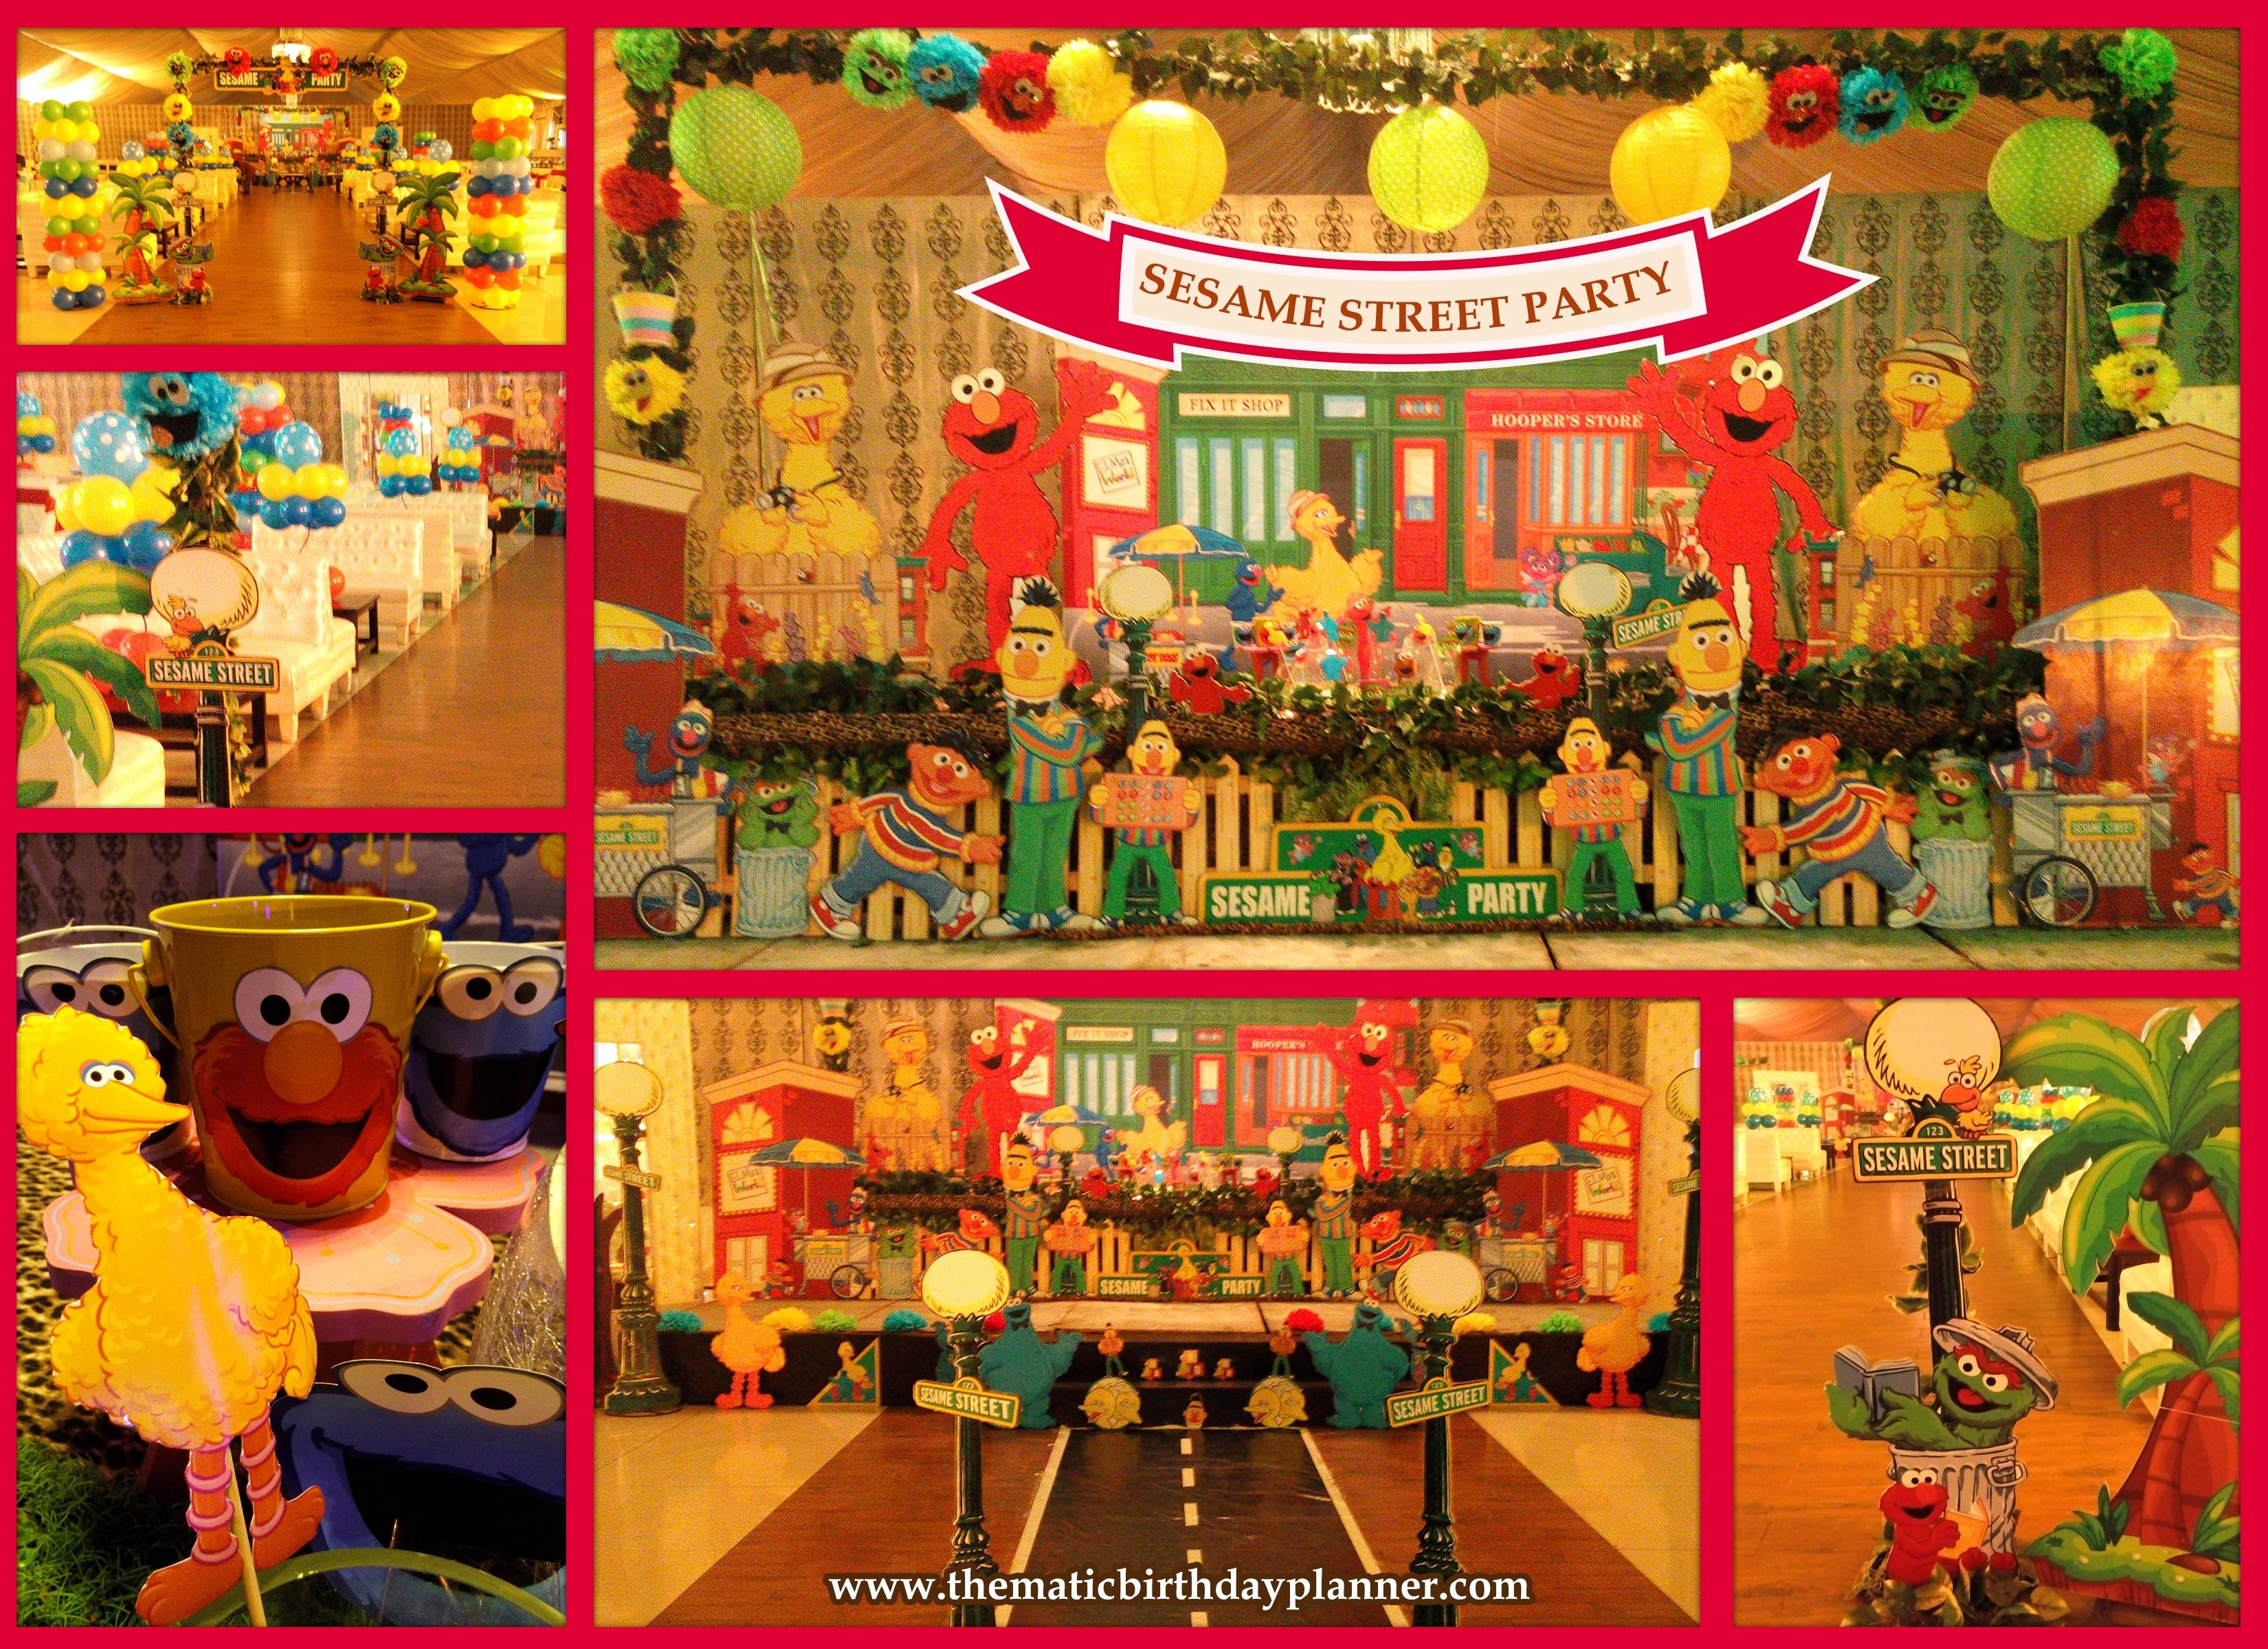 10 Most Recommended Sesame Street 1St Birthday Ideas sesame street 1st birthday party ideas theme planner in pakistan 2020